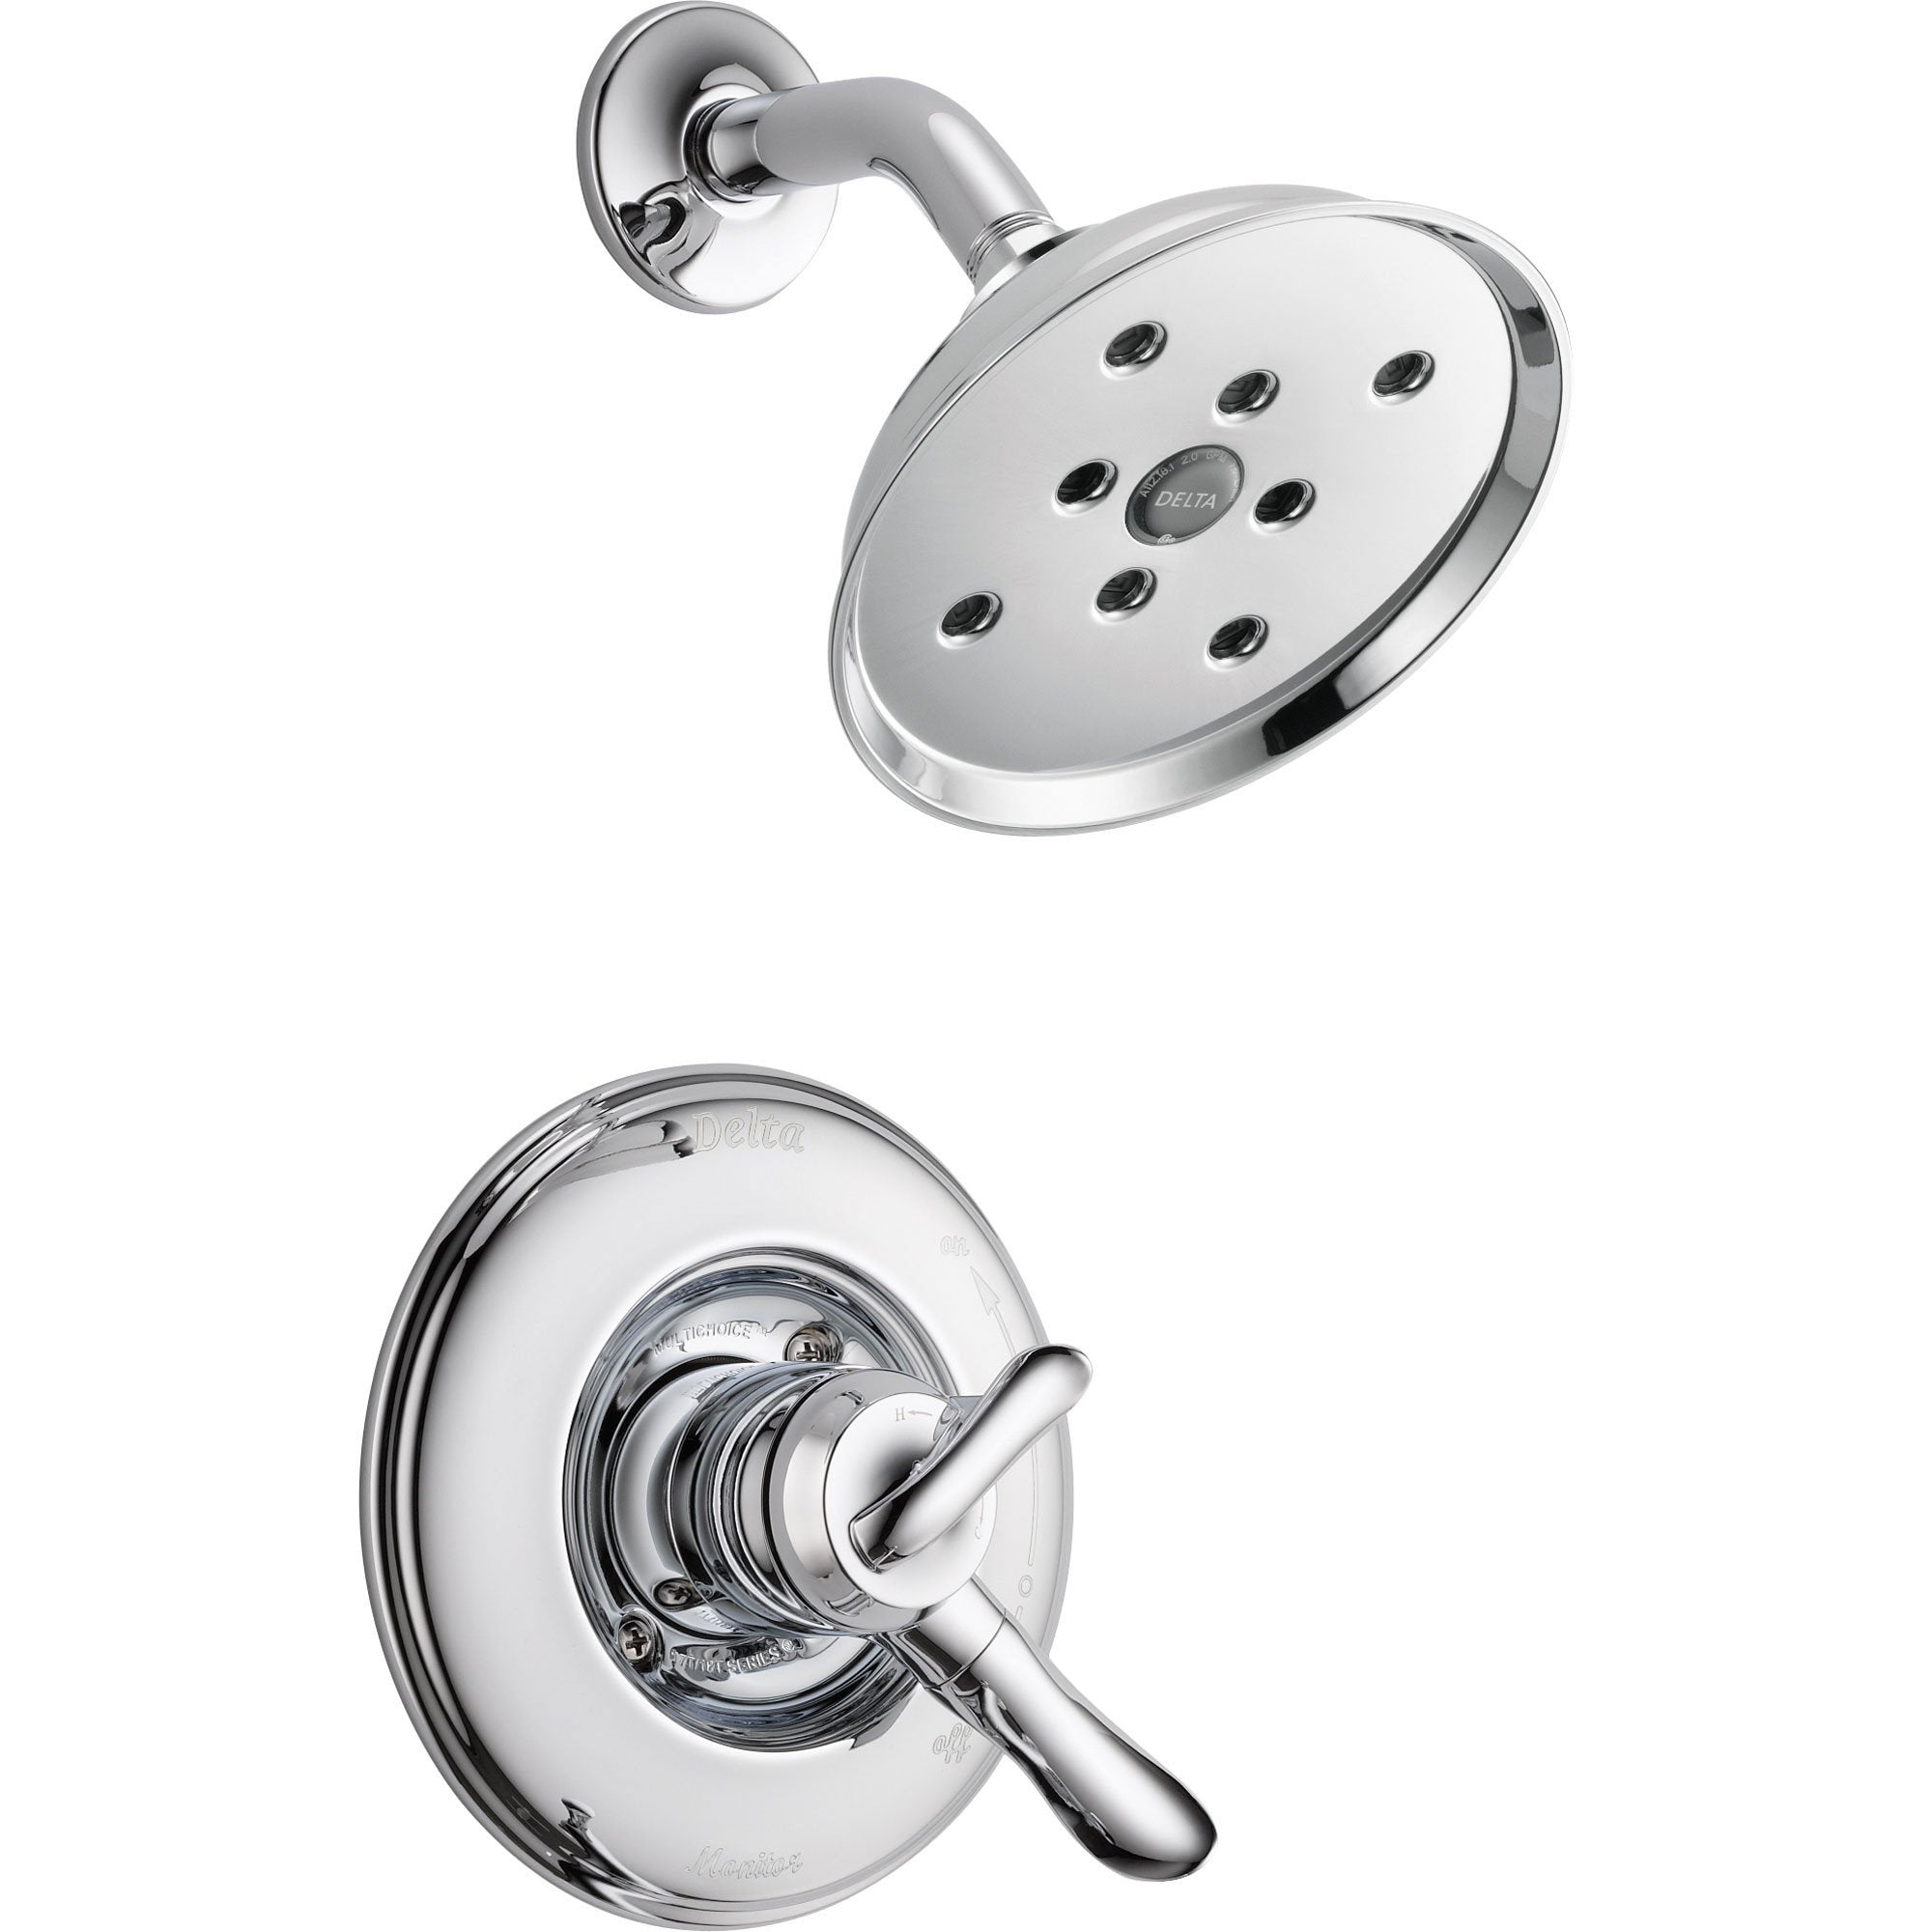 Delta Linden Dual Control Temp/Volume Chrome Shower Faucet with Valve D785V